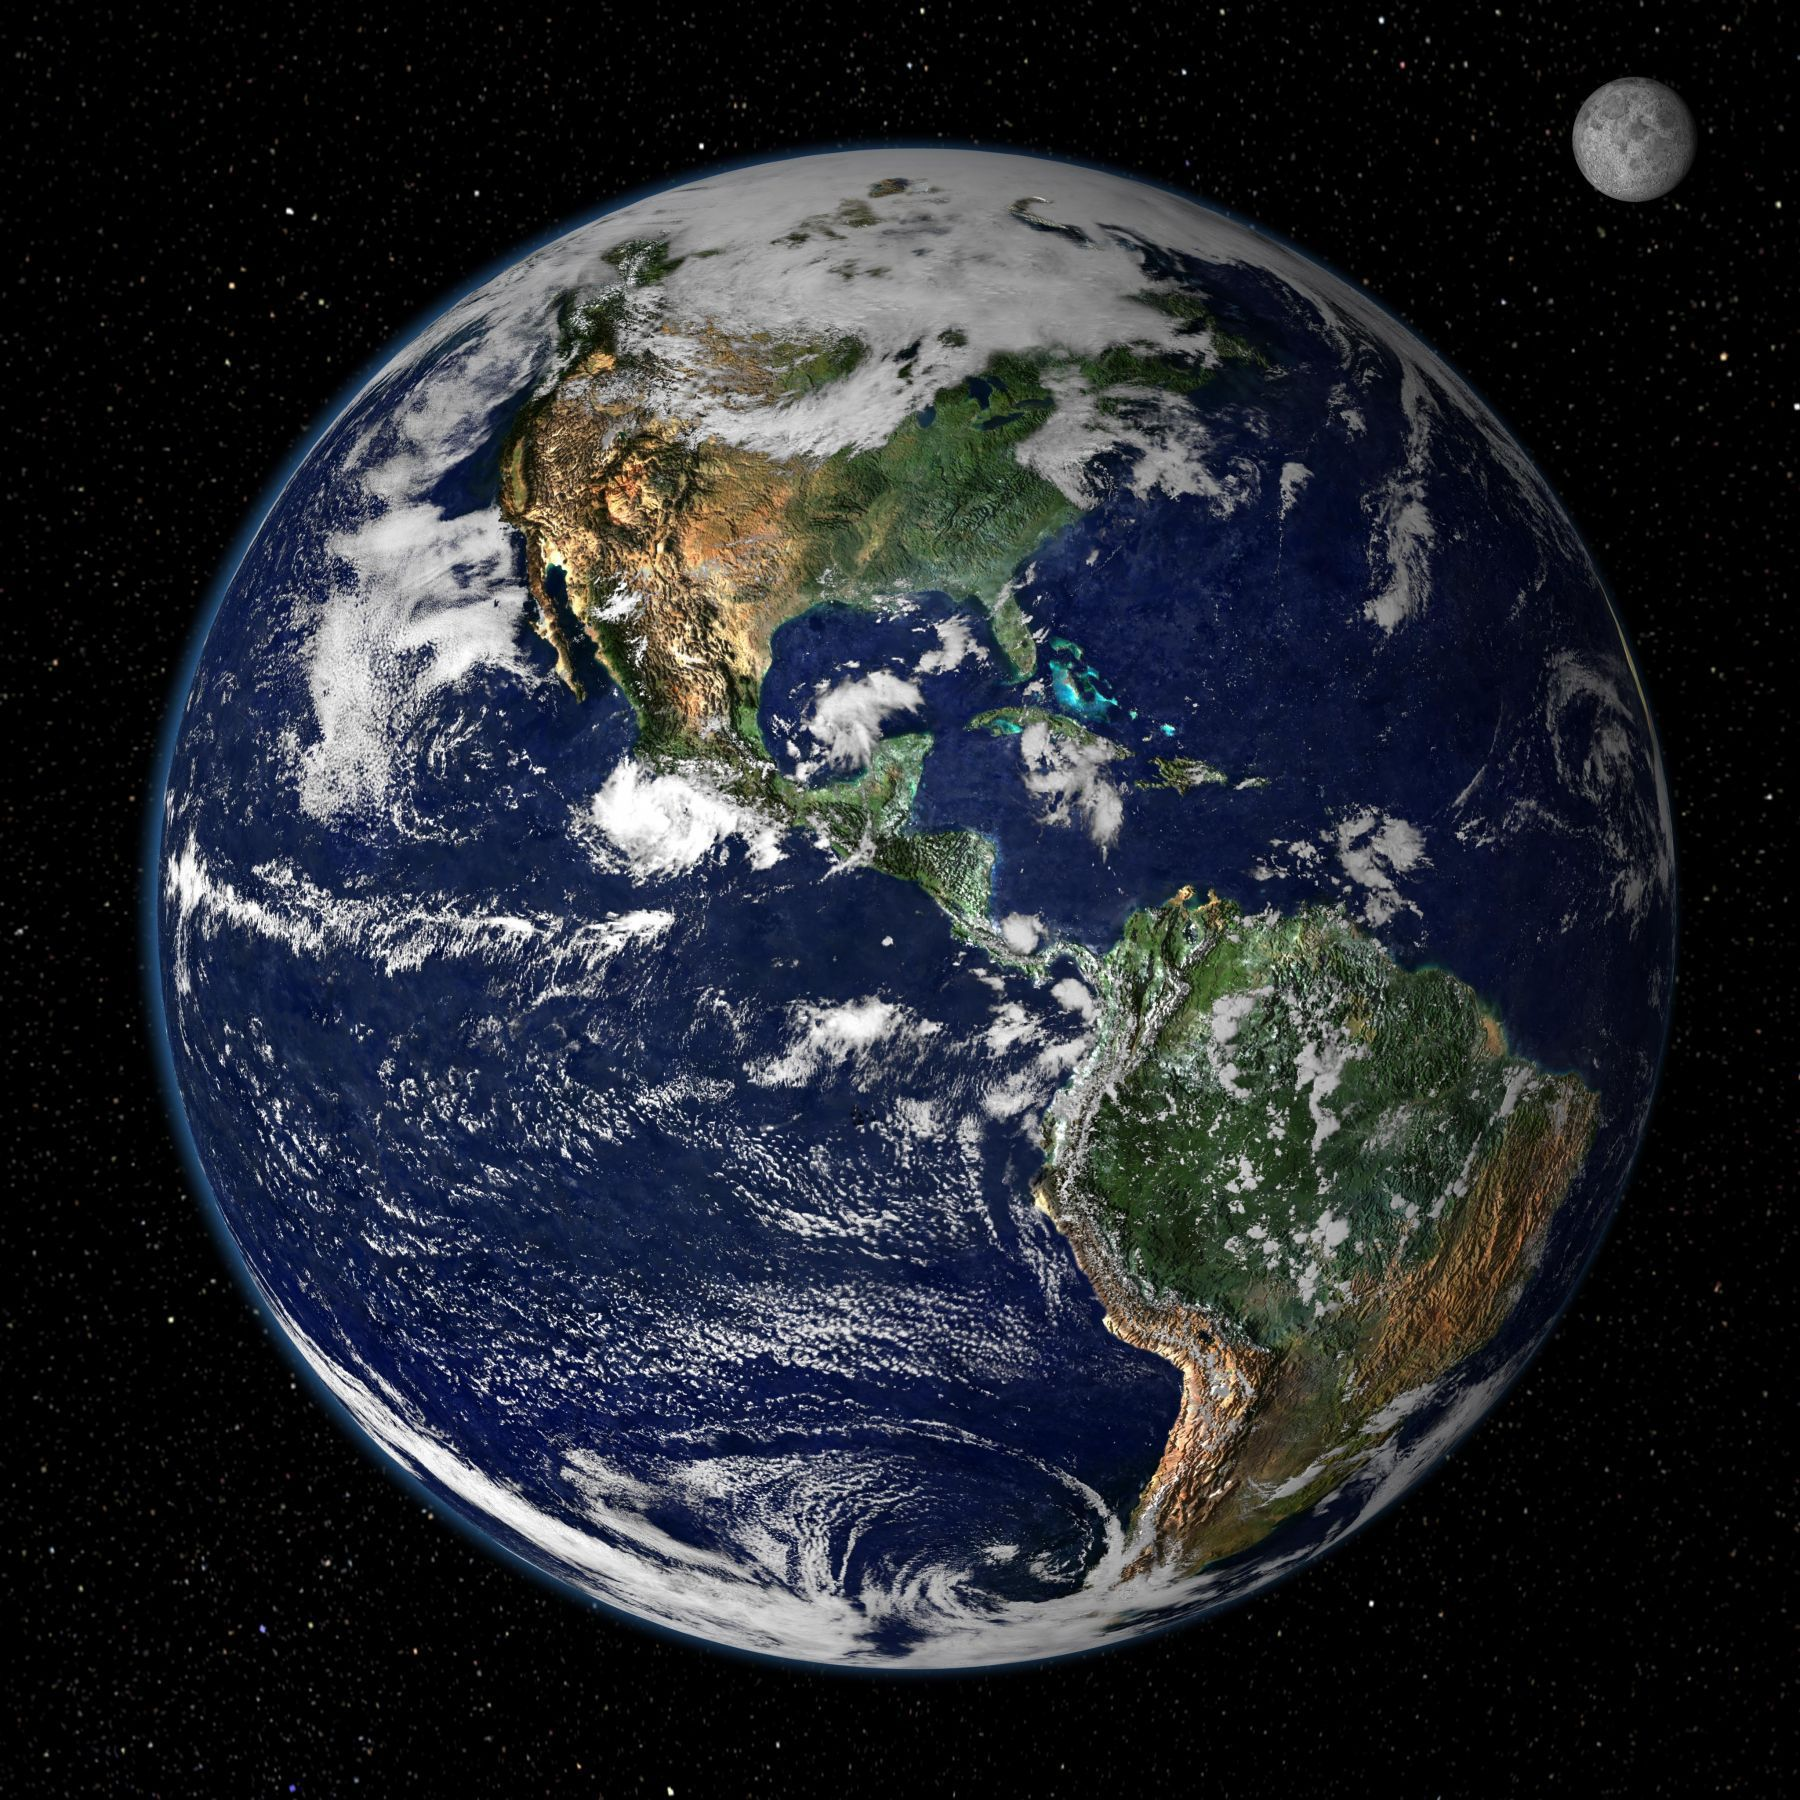 For the first half of our planet's history, there was no oxygen in the atmosphere. This life-giving gas only started ...